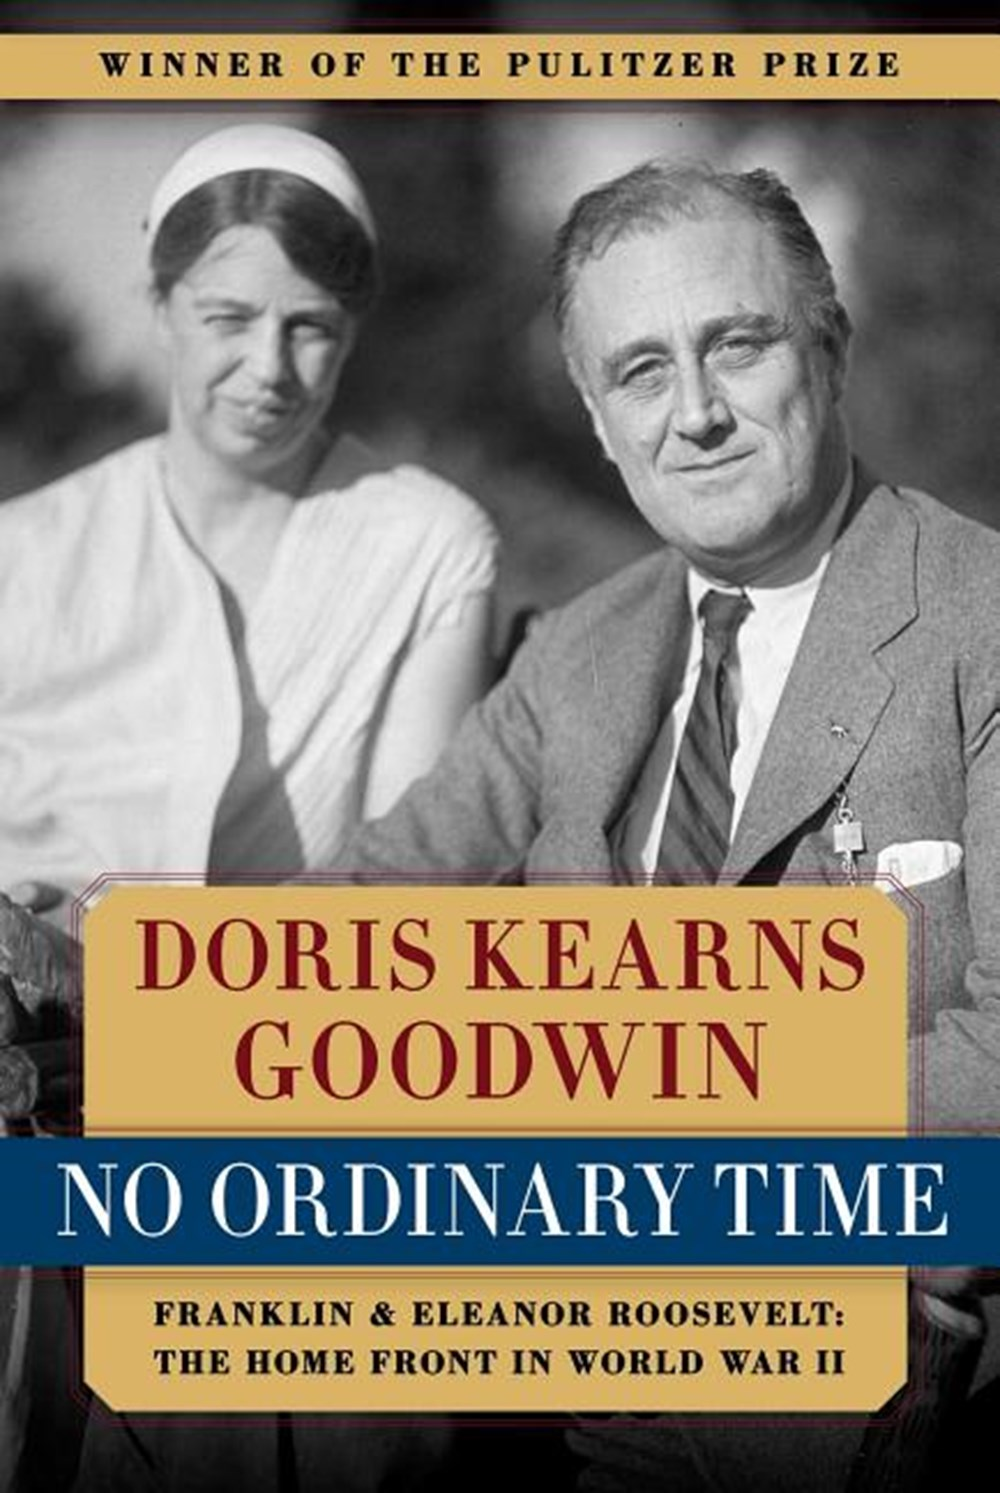 No Ordinary Time Franklin & Eleanor Roosevelt: The Home Front in World War II